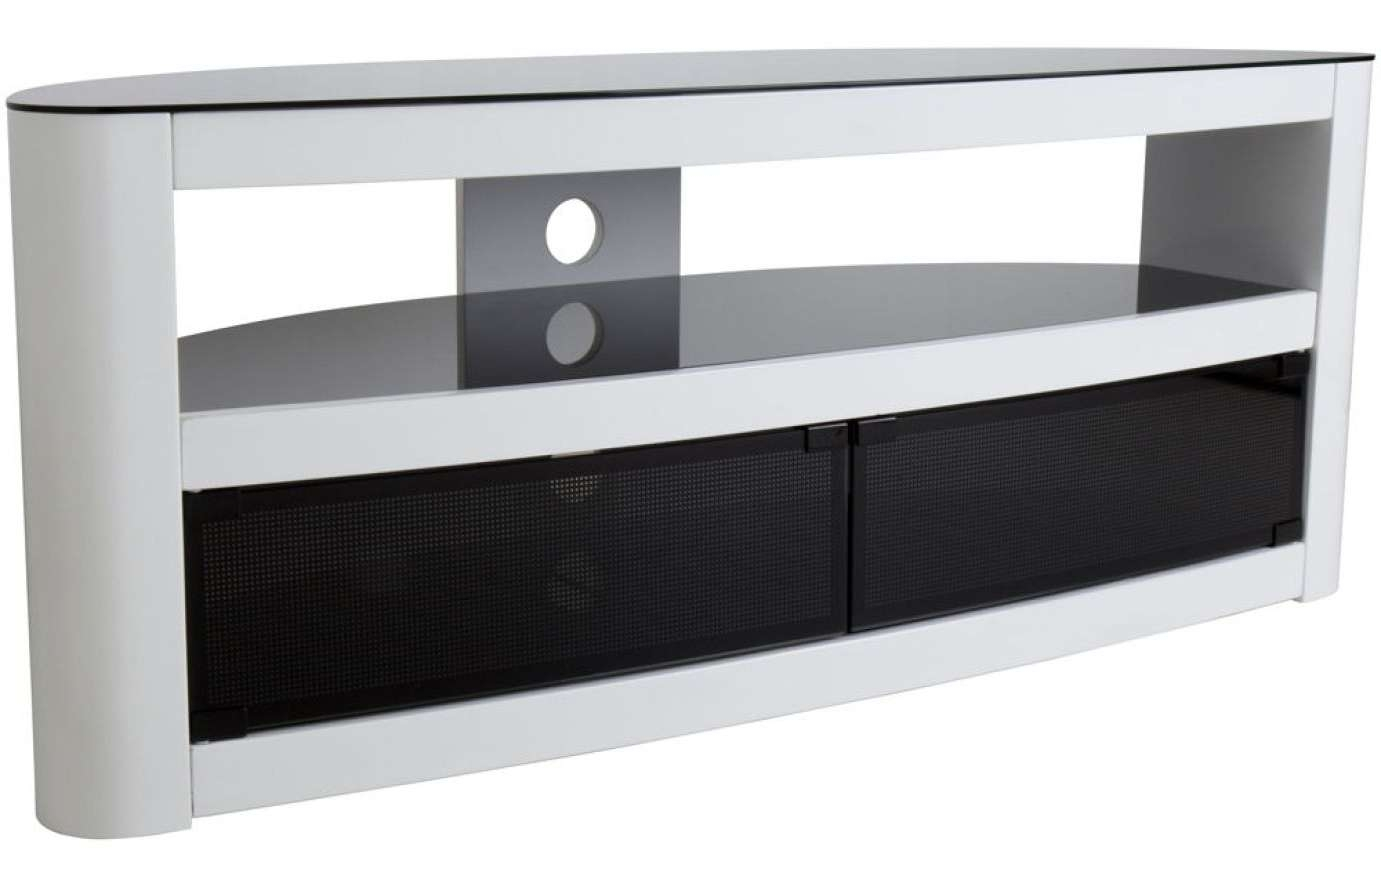 Tv : Tv Stand Images Amazing Stands And Deliver Tv Stands Buy Avf In Stand And Deliver Tv Stands (View 2 of 20)